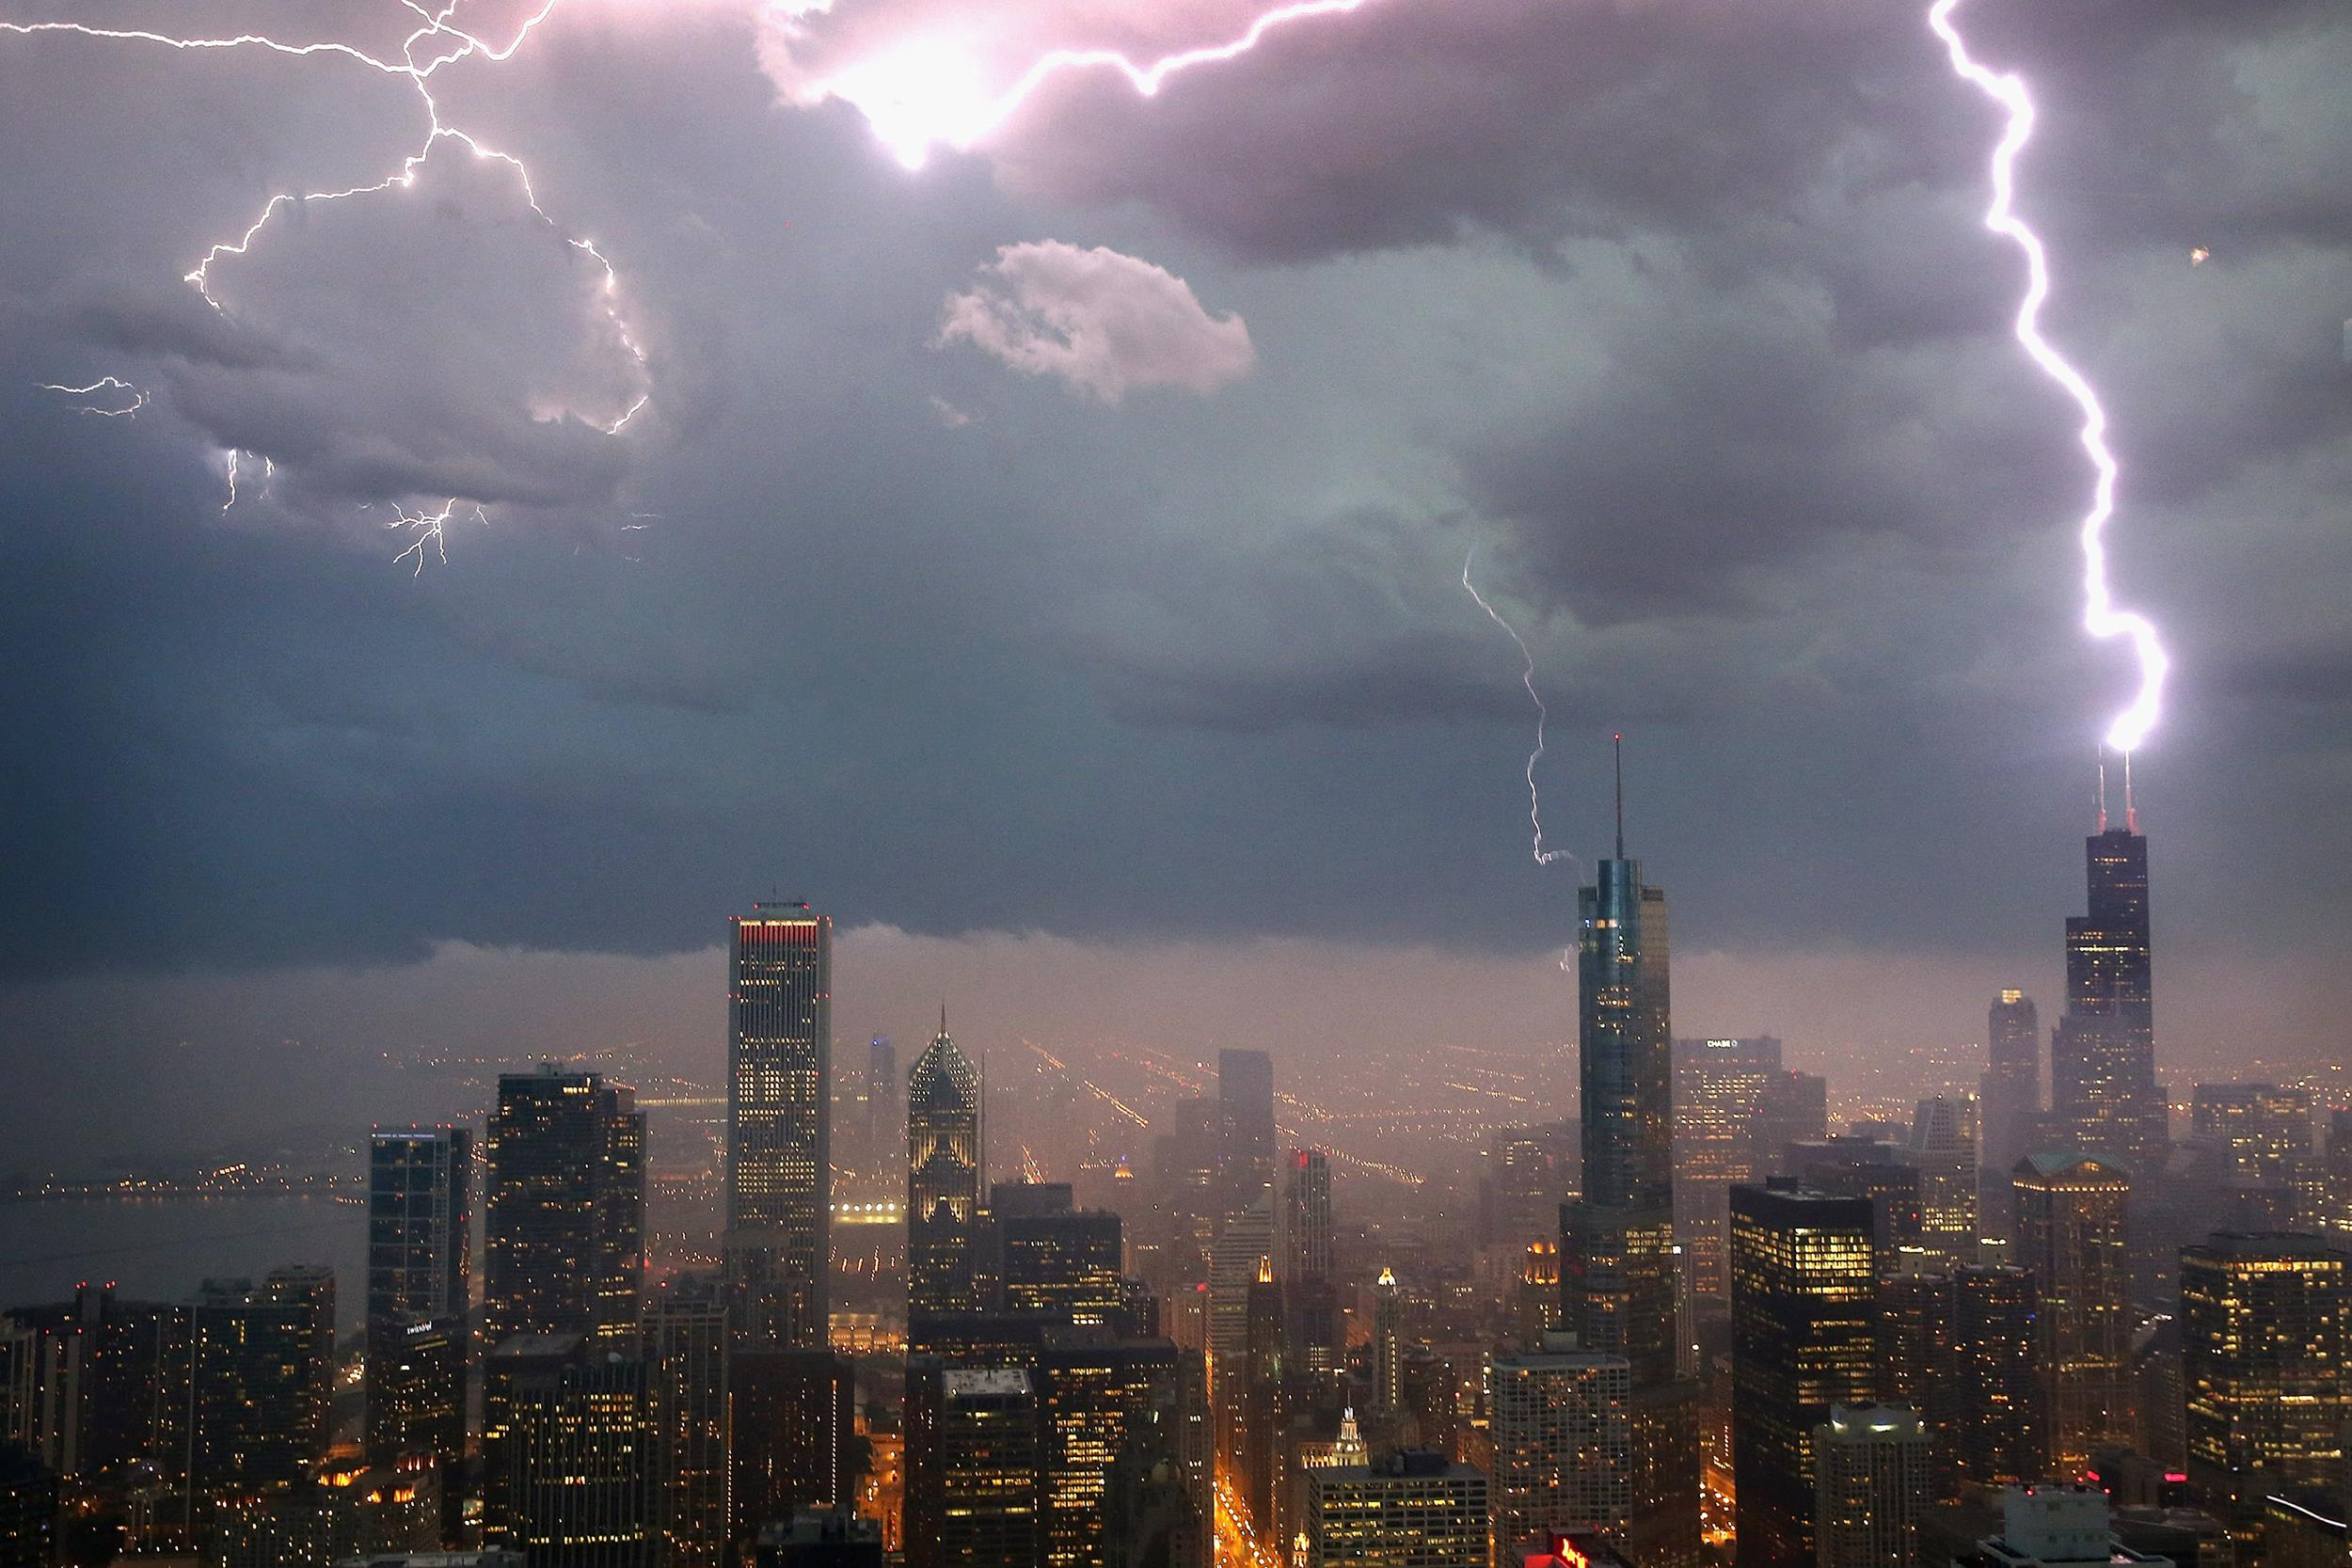 Image: Lightning strikes the Willis Tower (formerly Sears Tower) on June 12, 2013 in Chicago.